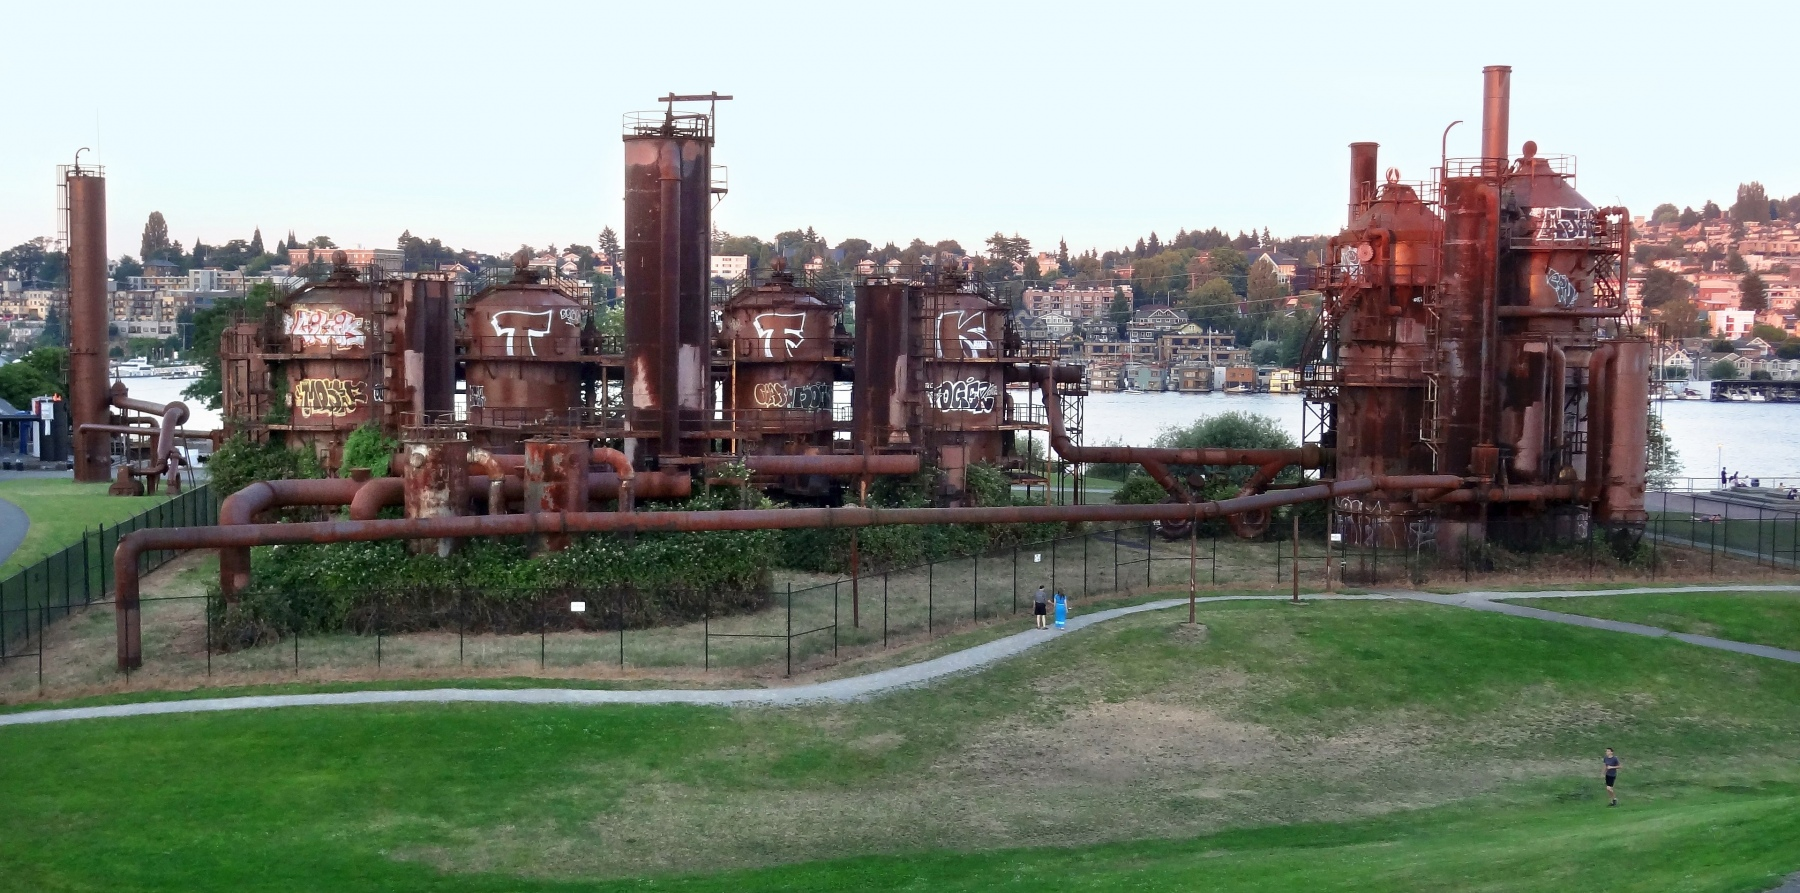 Seattle_Gas_Works_Park_old_gas_plant2013